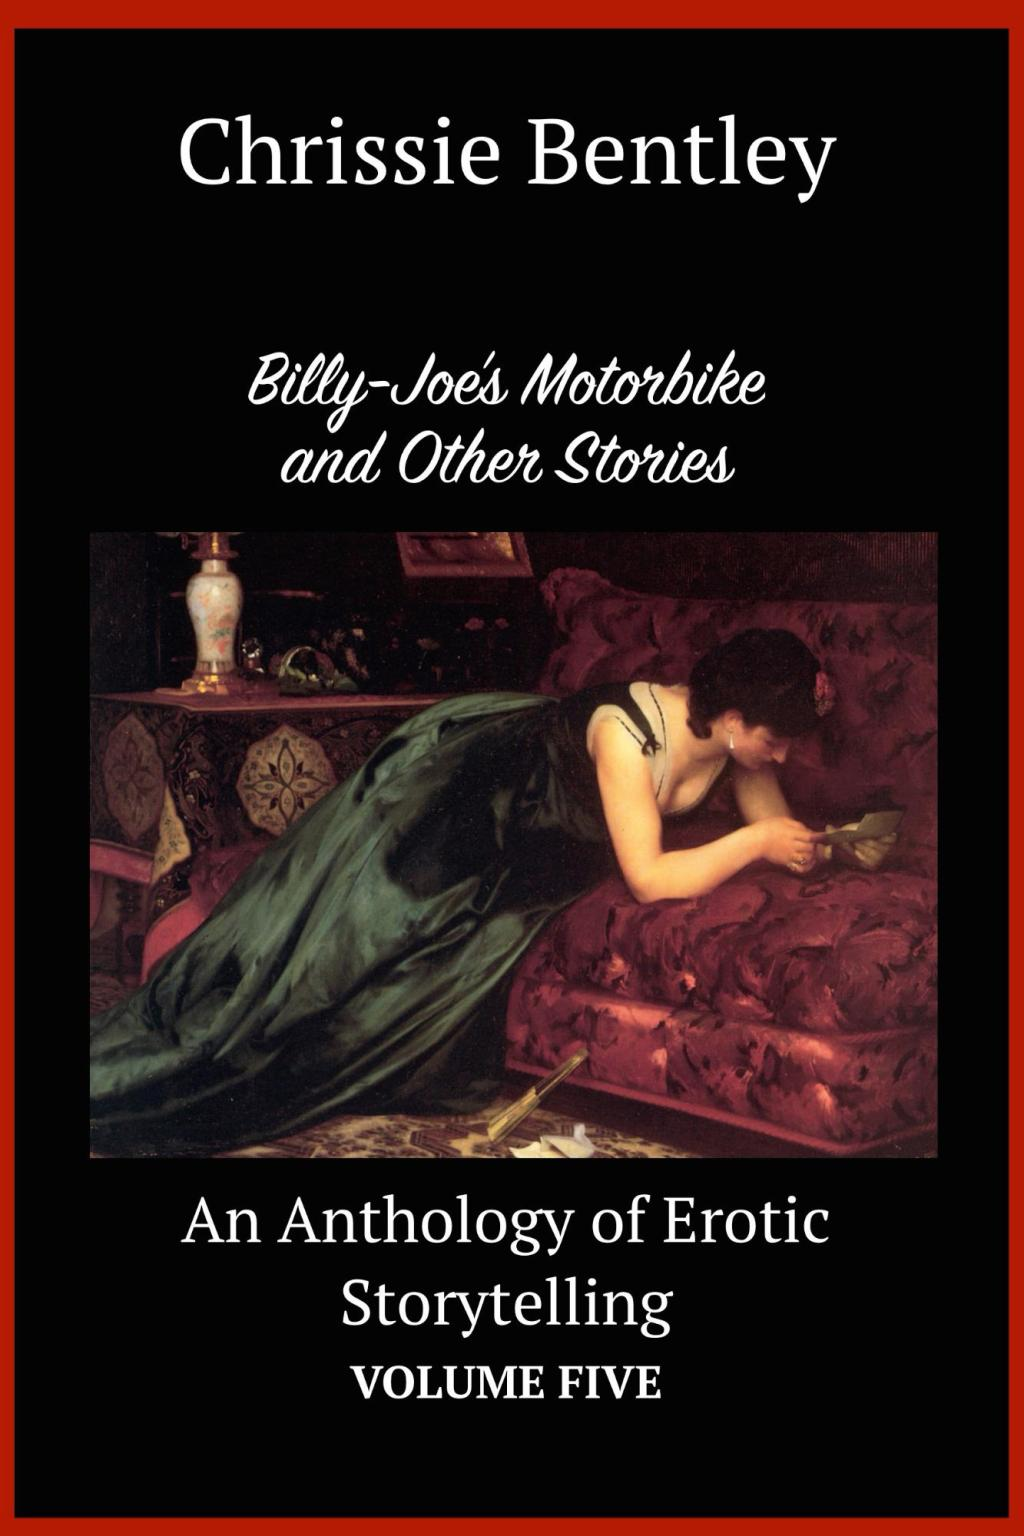 billyjoes_motorbik_cover_for_kindle